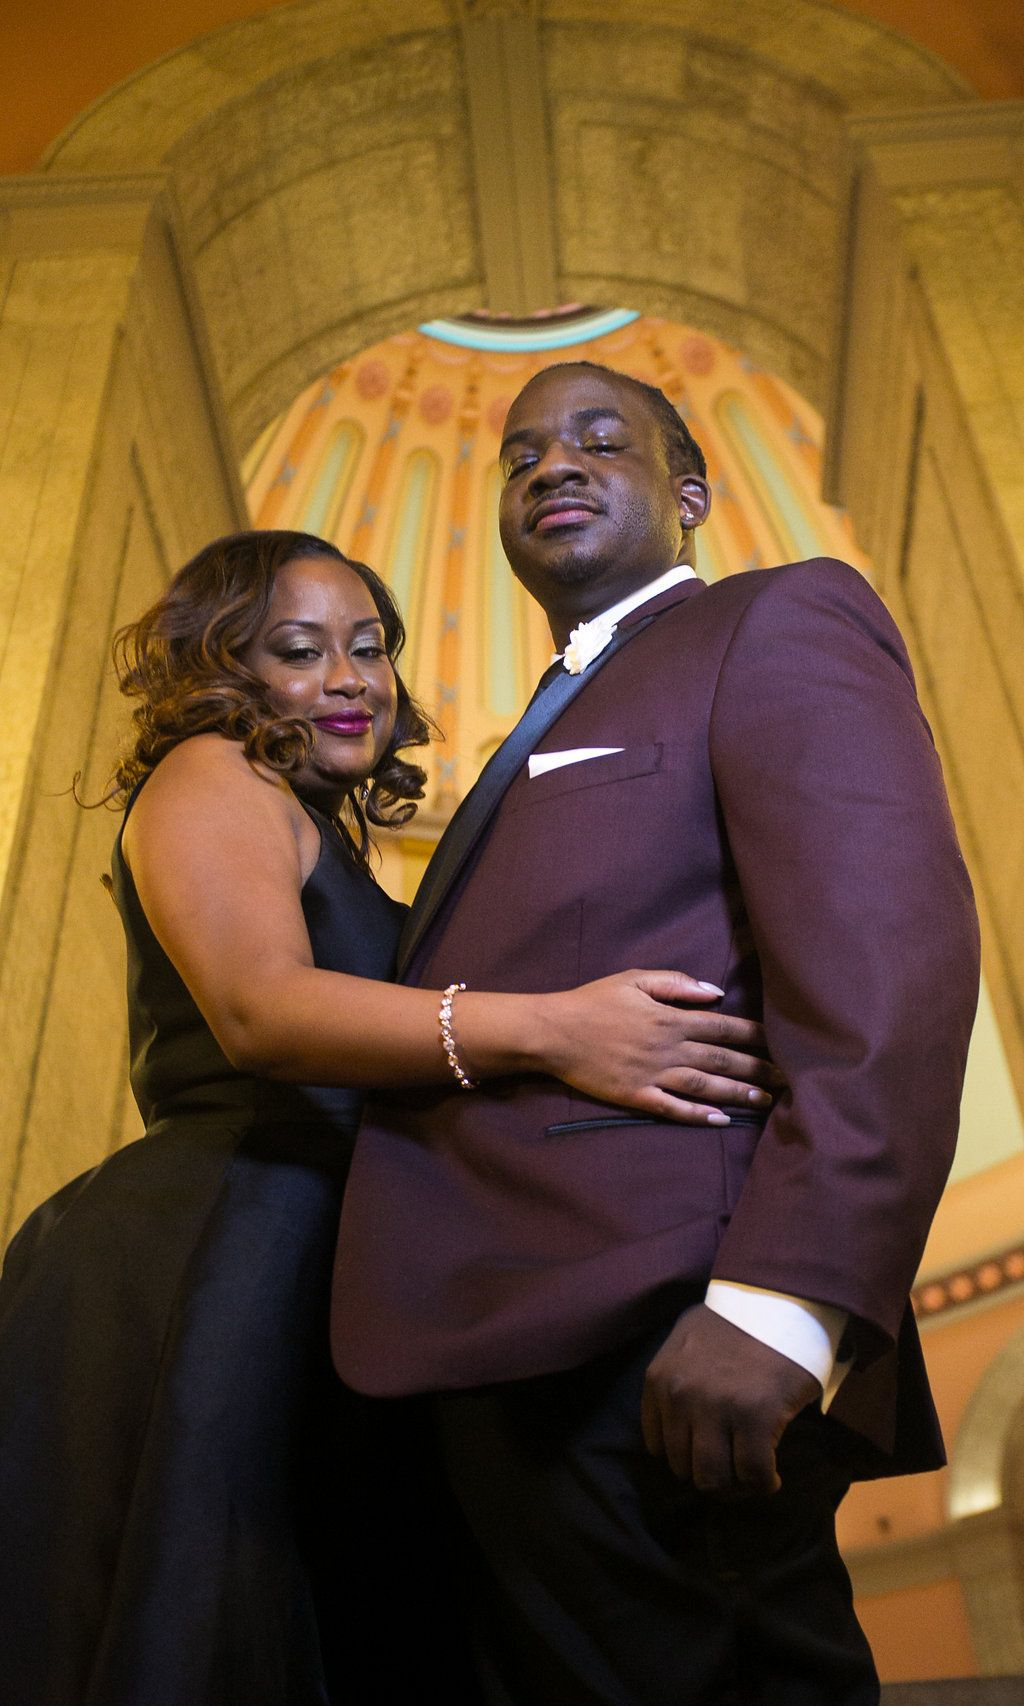 wedding picture locations akron ohio%0A The Premier Online Resource For Brides Of Color  Real weddings  digital  magazine  vendors and much more